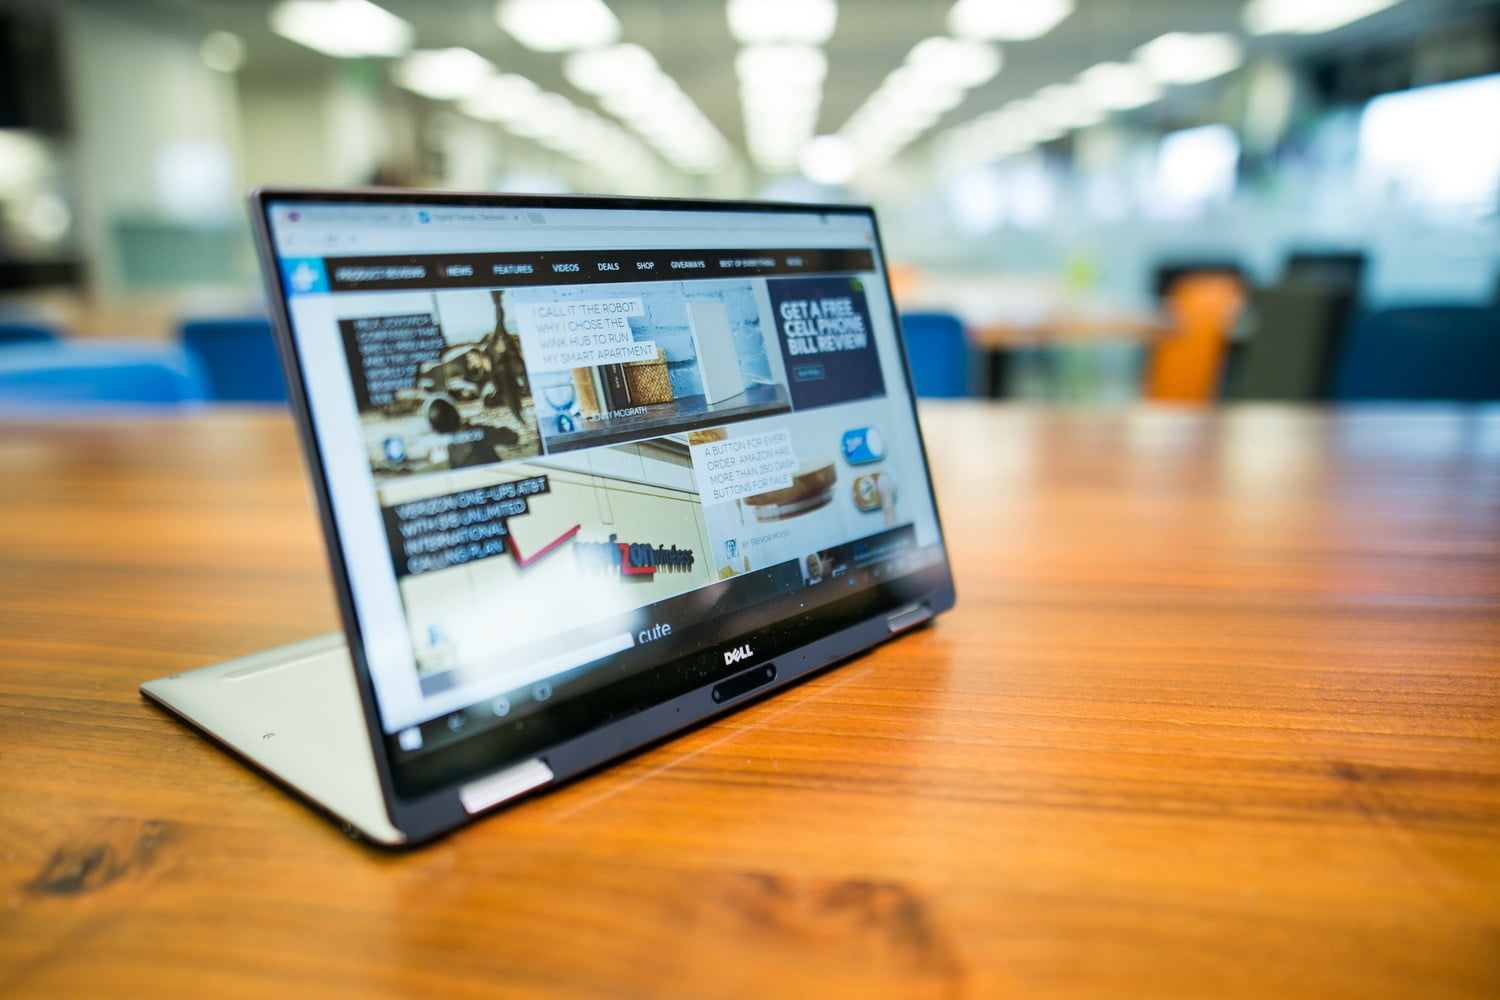 Dell XPS 13 2-in-1 Review: Building on a Winning Formula